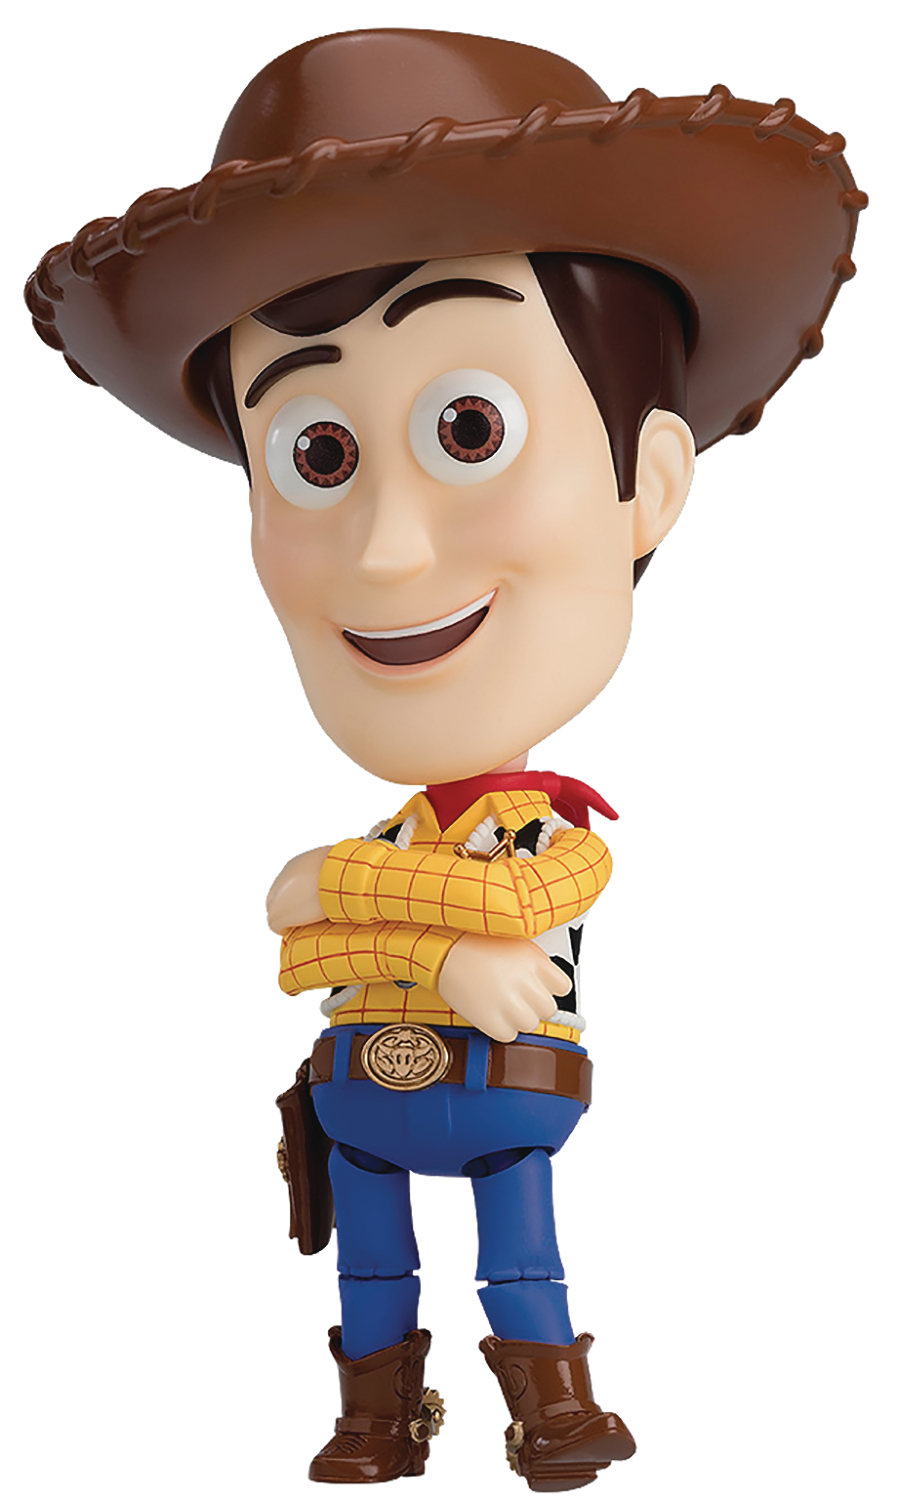 TOY STORY WOODY NENDOROID AF DLX VER